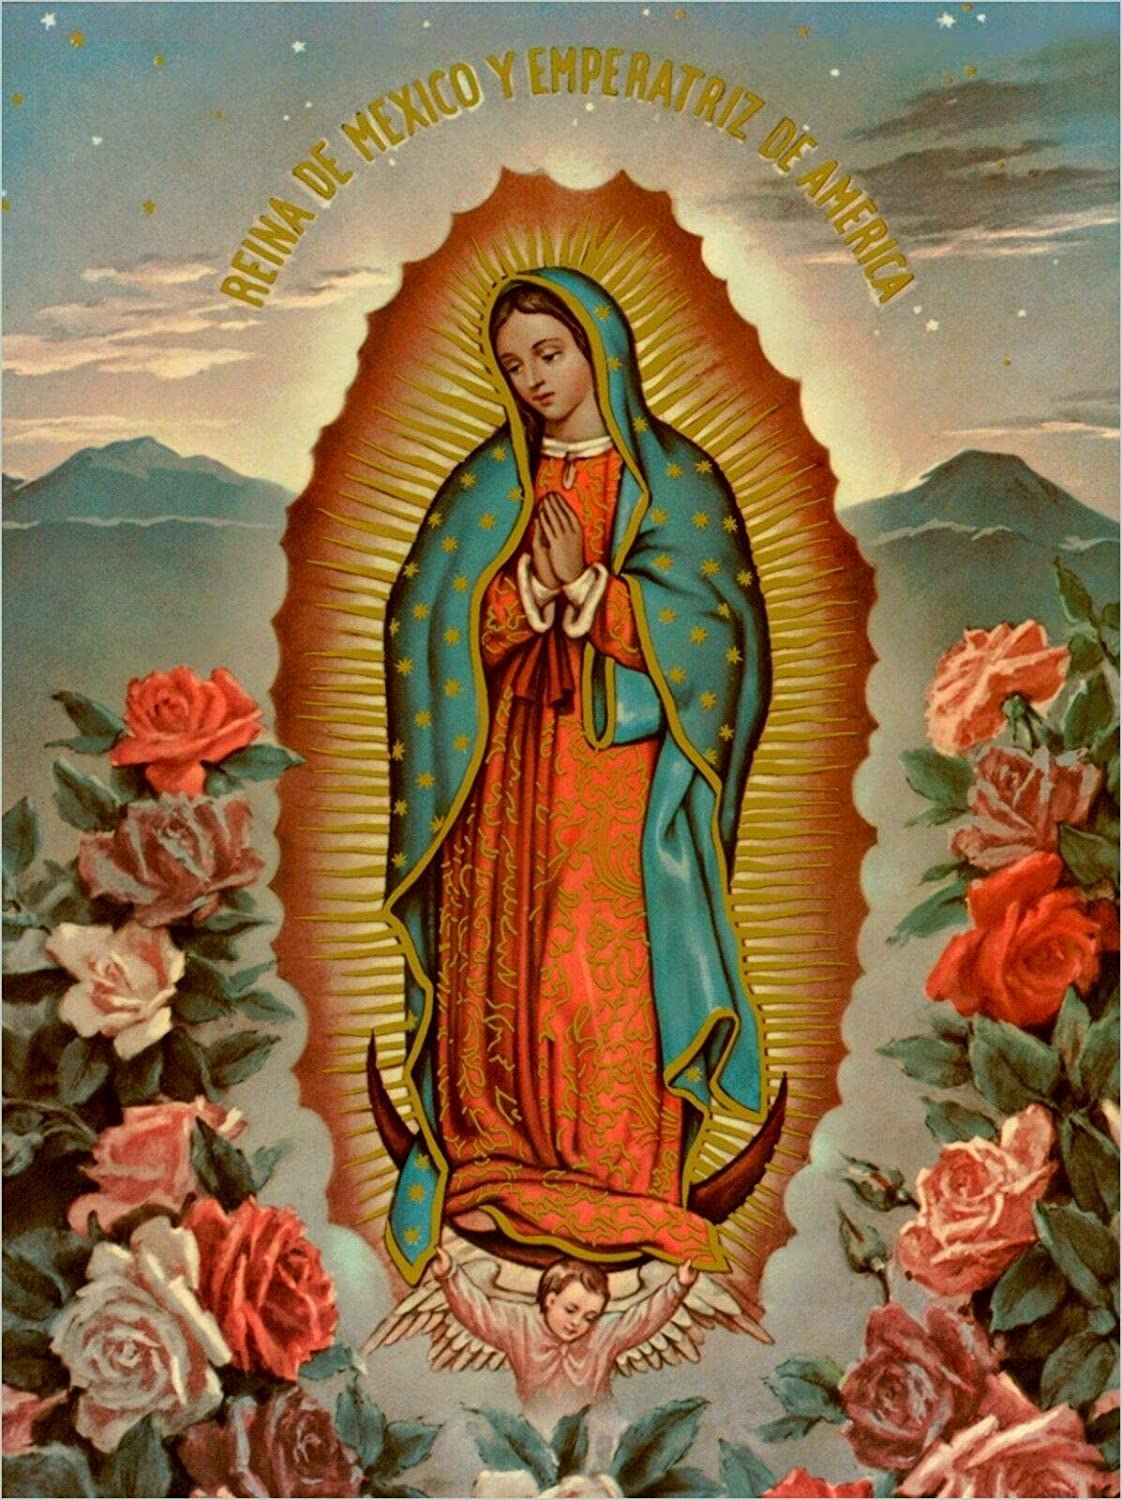 Metal Tin Sign Vintage Chic Art Decoration Virgen De Guadalupe Virgin Mary Catholic,Acts,Saints for Home Bar Cafe Farm Store Garage or Club 12